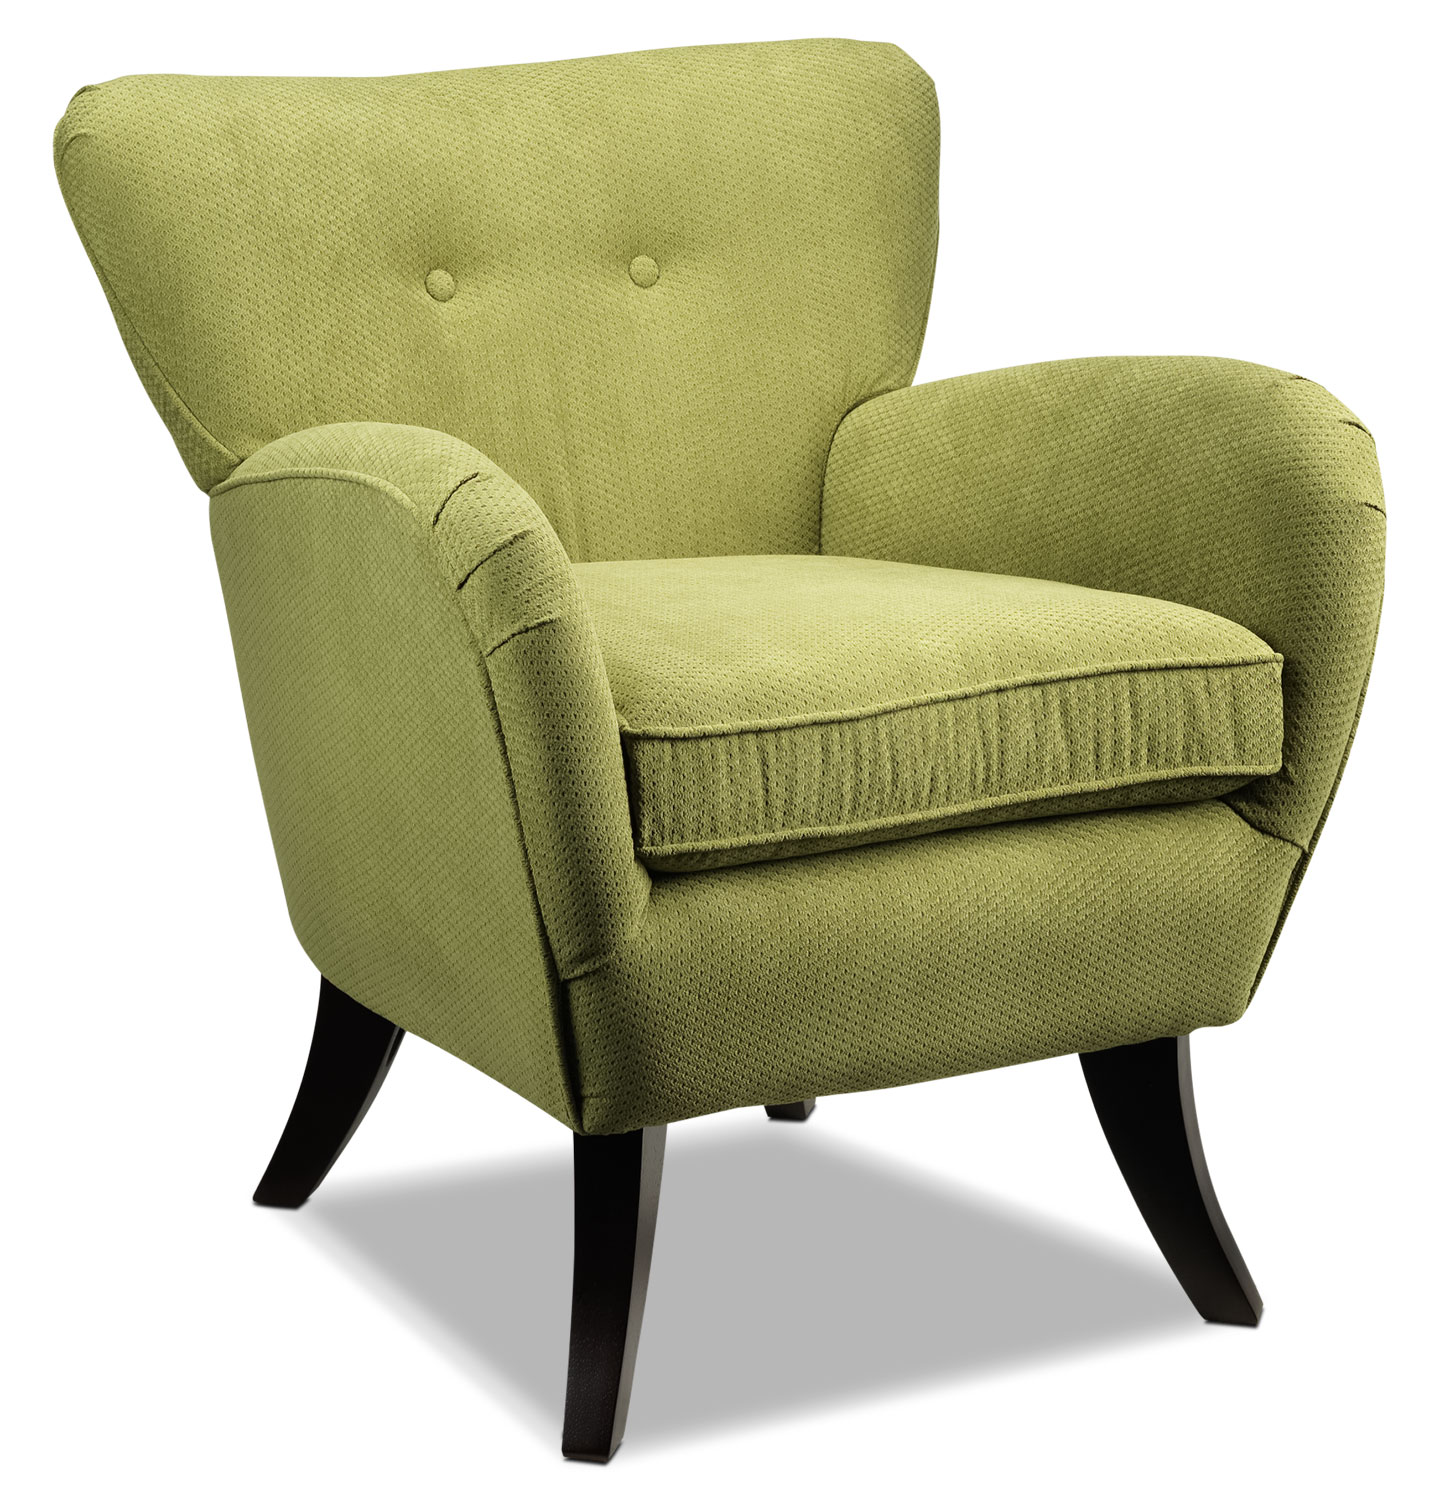 Living Room Furniture - Elnora Accent Chair - Loden Green